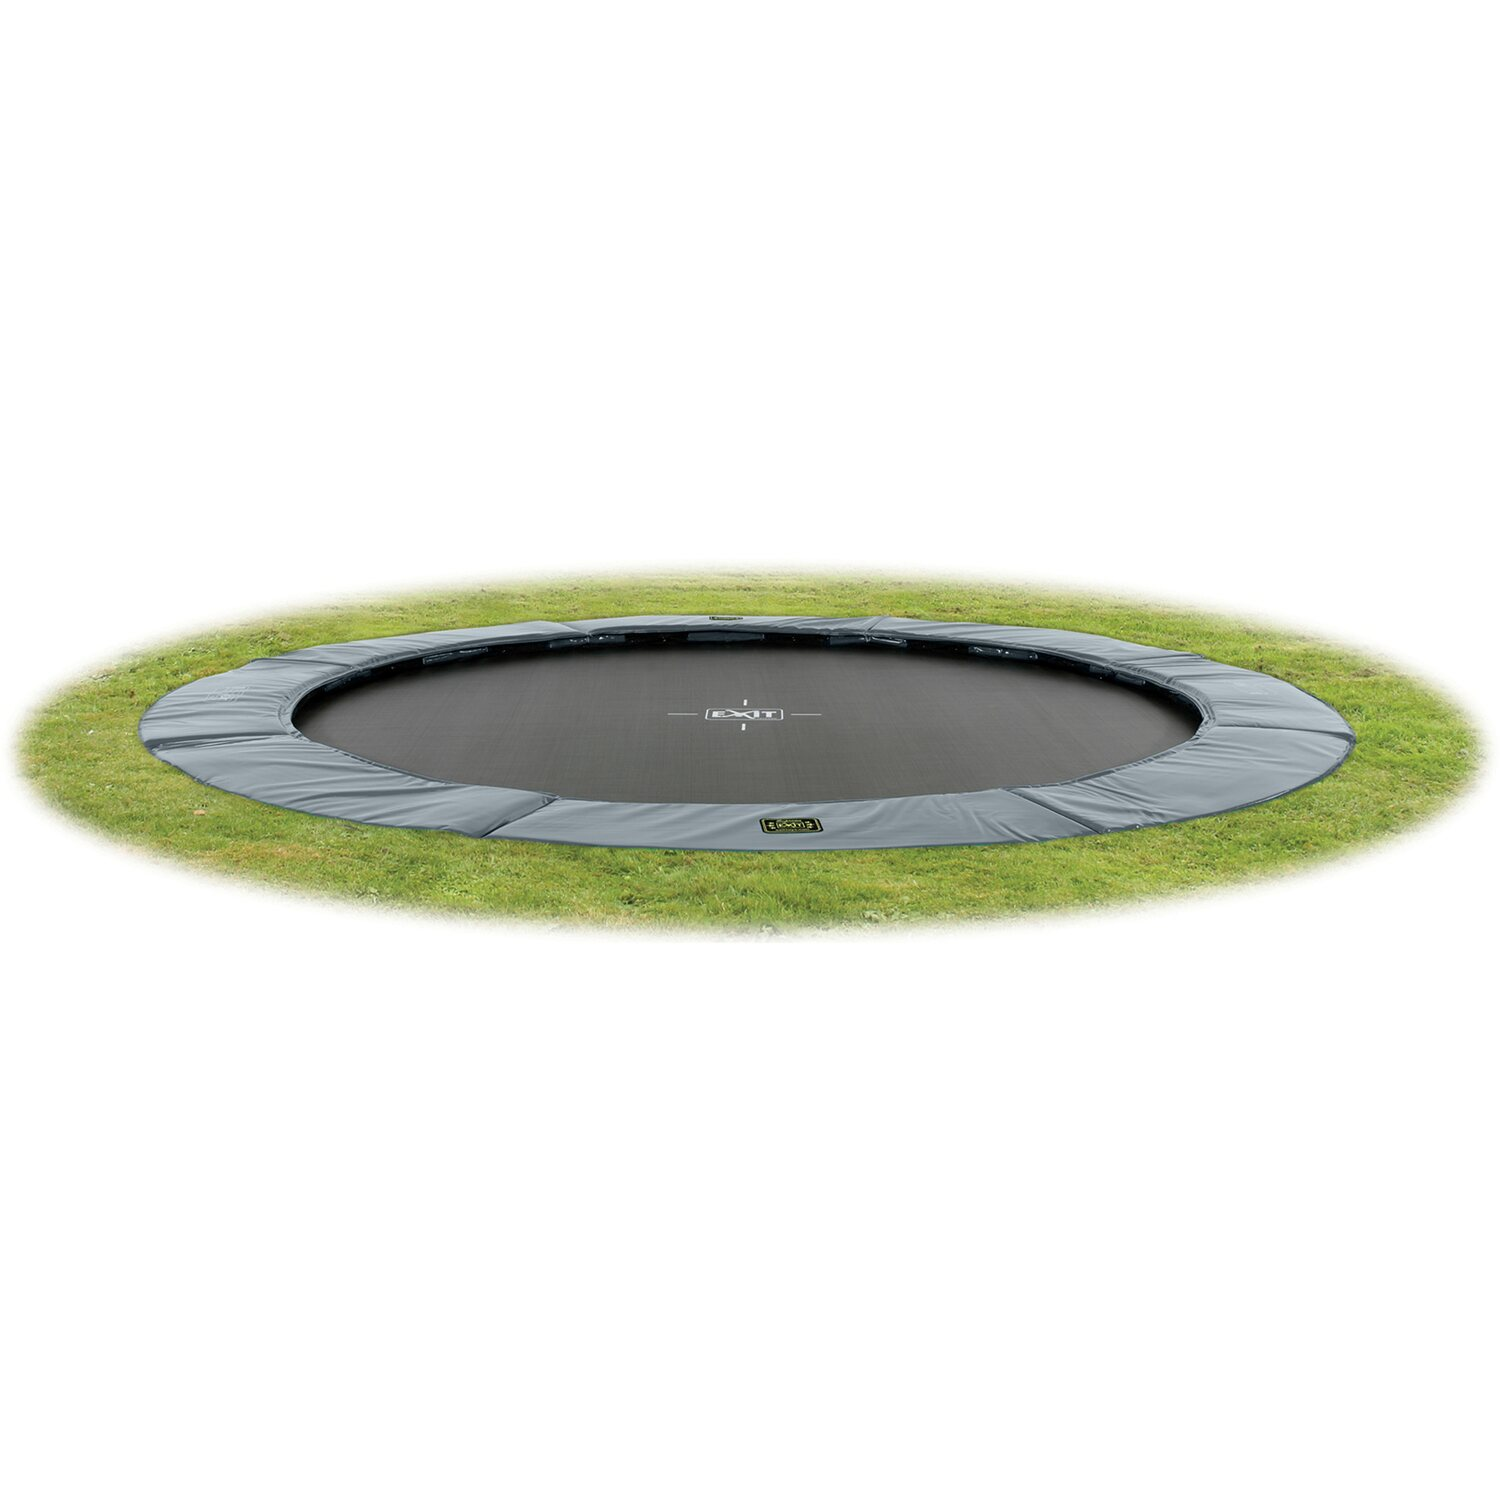 Exit Bodentrampolin Supreme Ground Level 305 Cm Grau